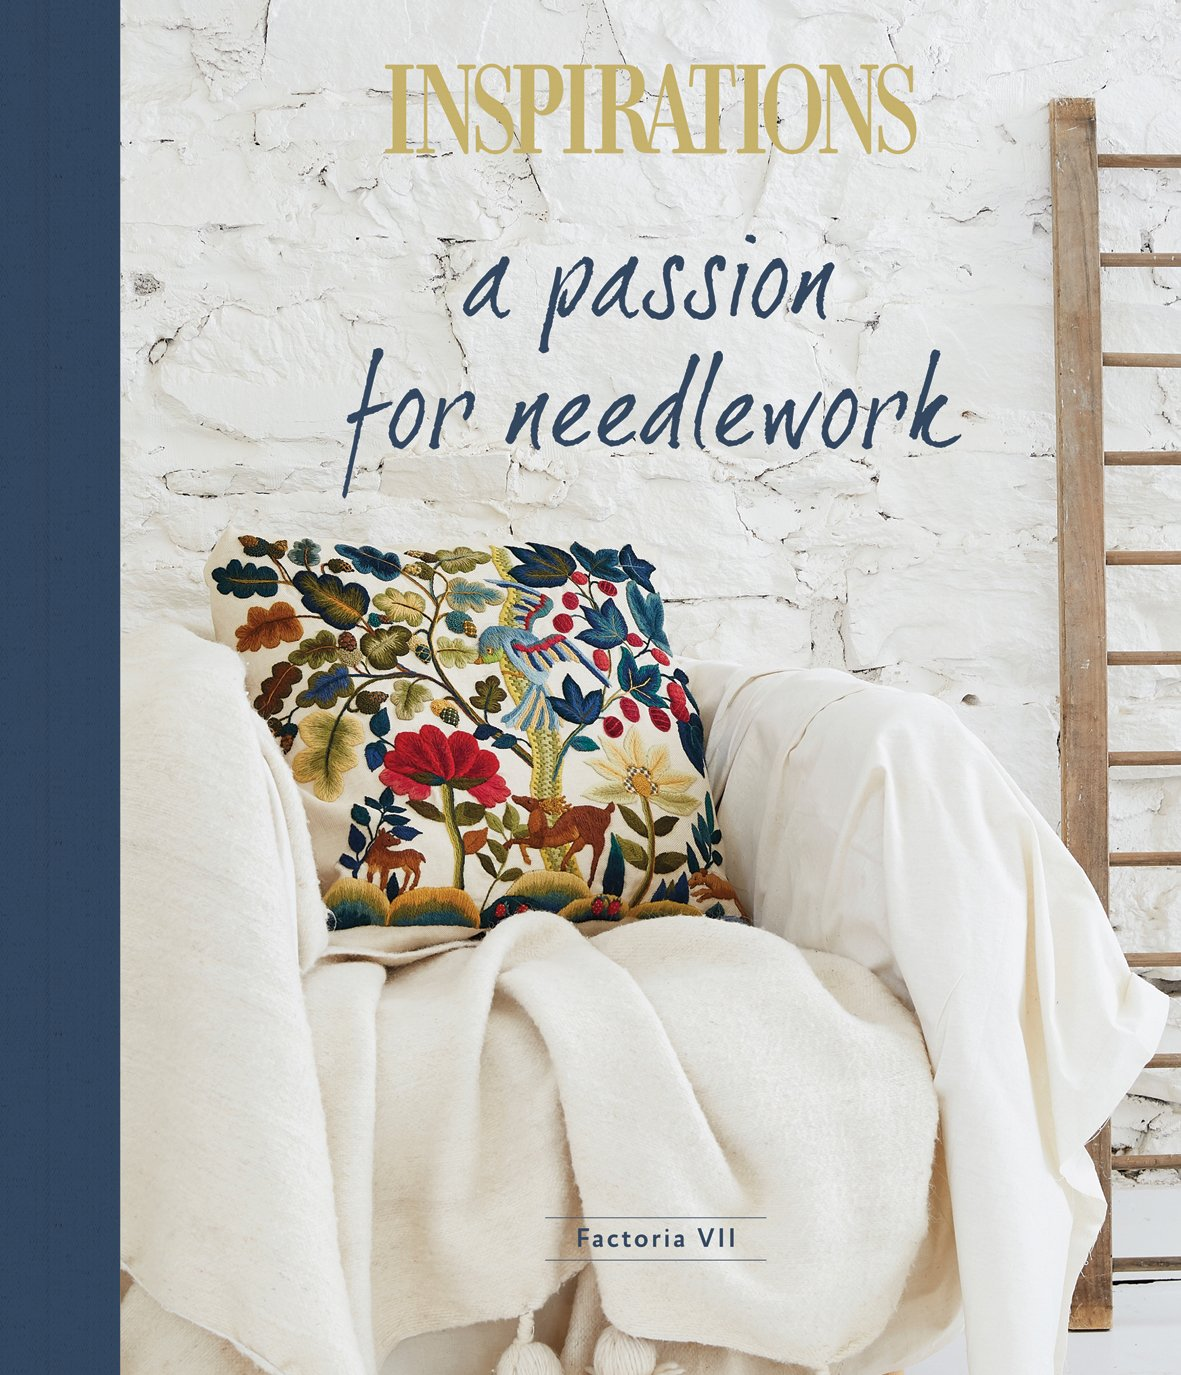 Inspirations - A Passion for Needlework